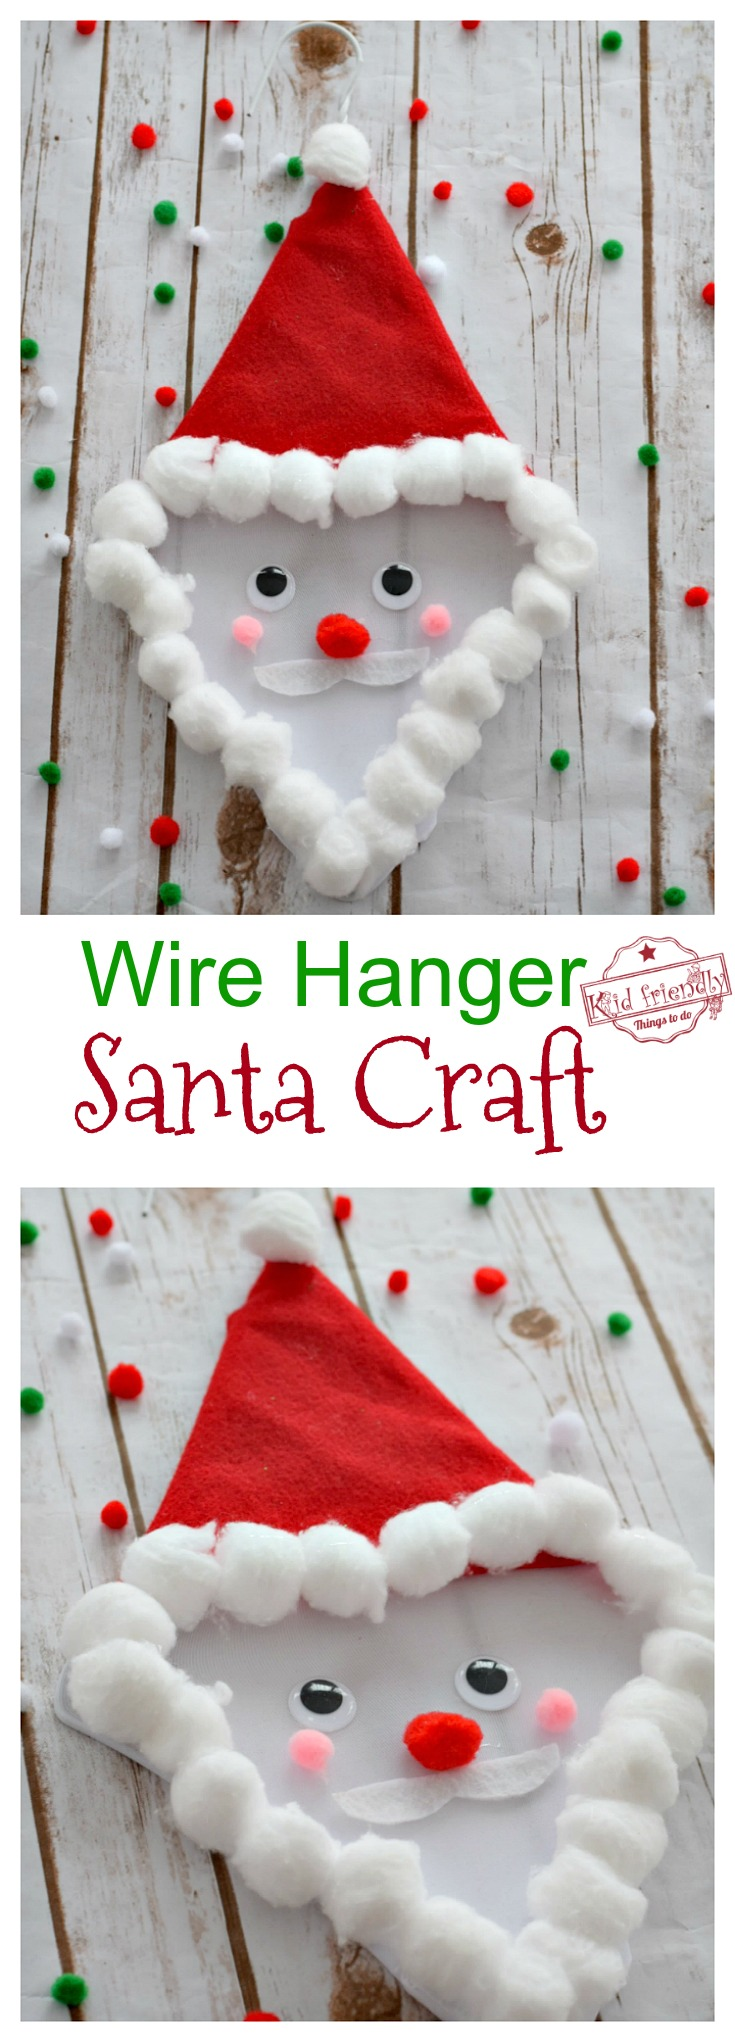 Make A Cute Santa Claus Out of A Coat Hanger! - Easy Kid's or Preschool Craft for Christmas - Adorable - Hang it up for Christmas Cheer! www.kidfriendlythingstodo.com